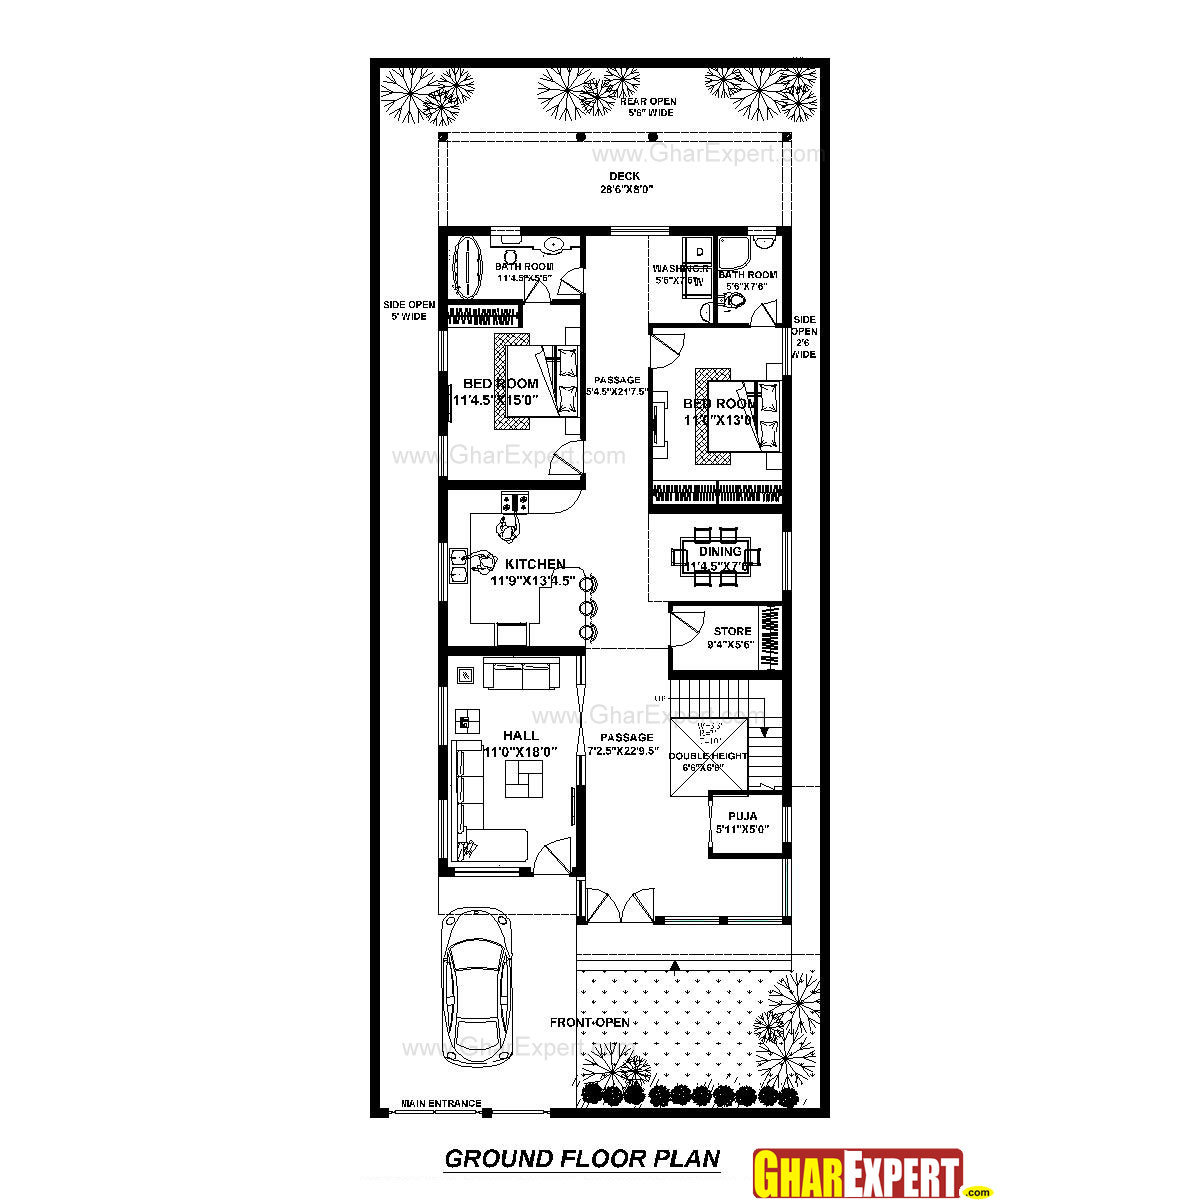 House Plan for 39 Feet by 90 Feet plot (Plot Size 153